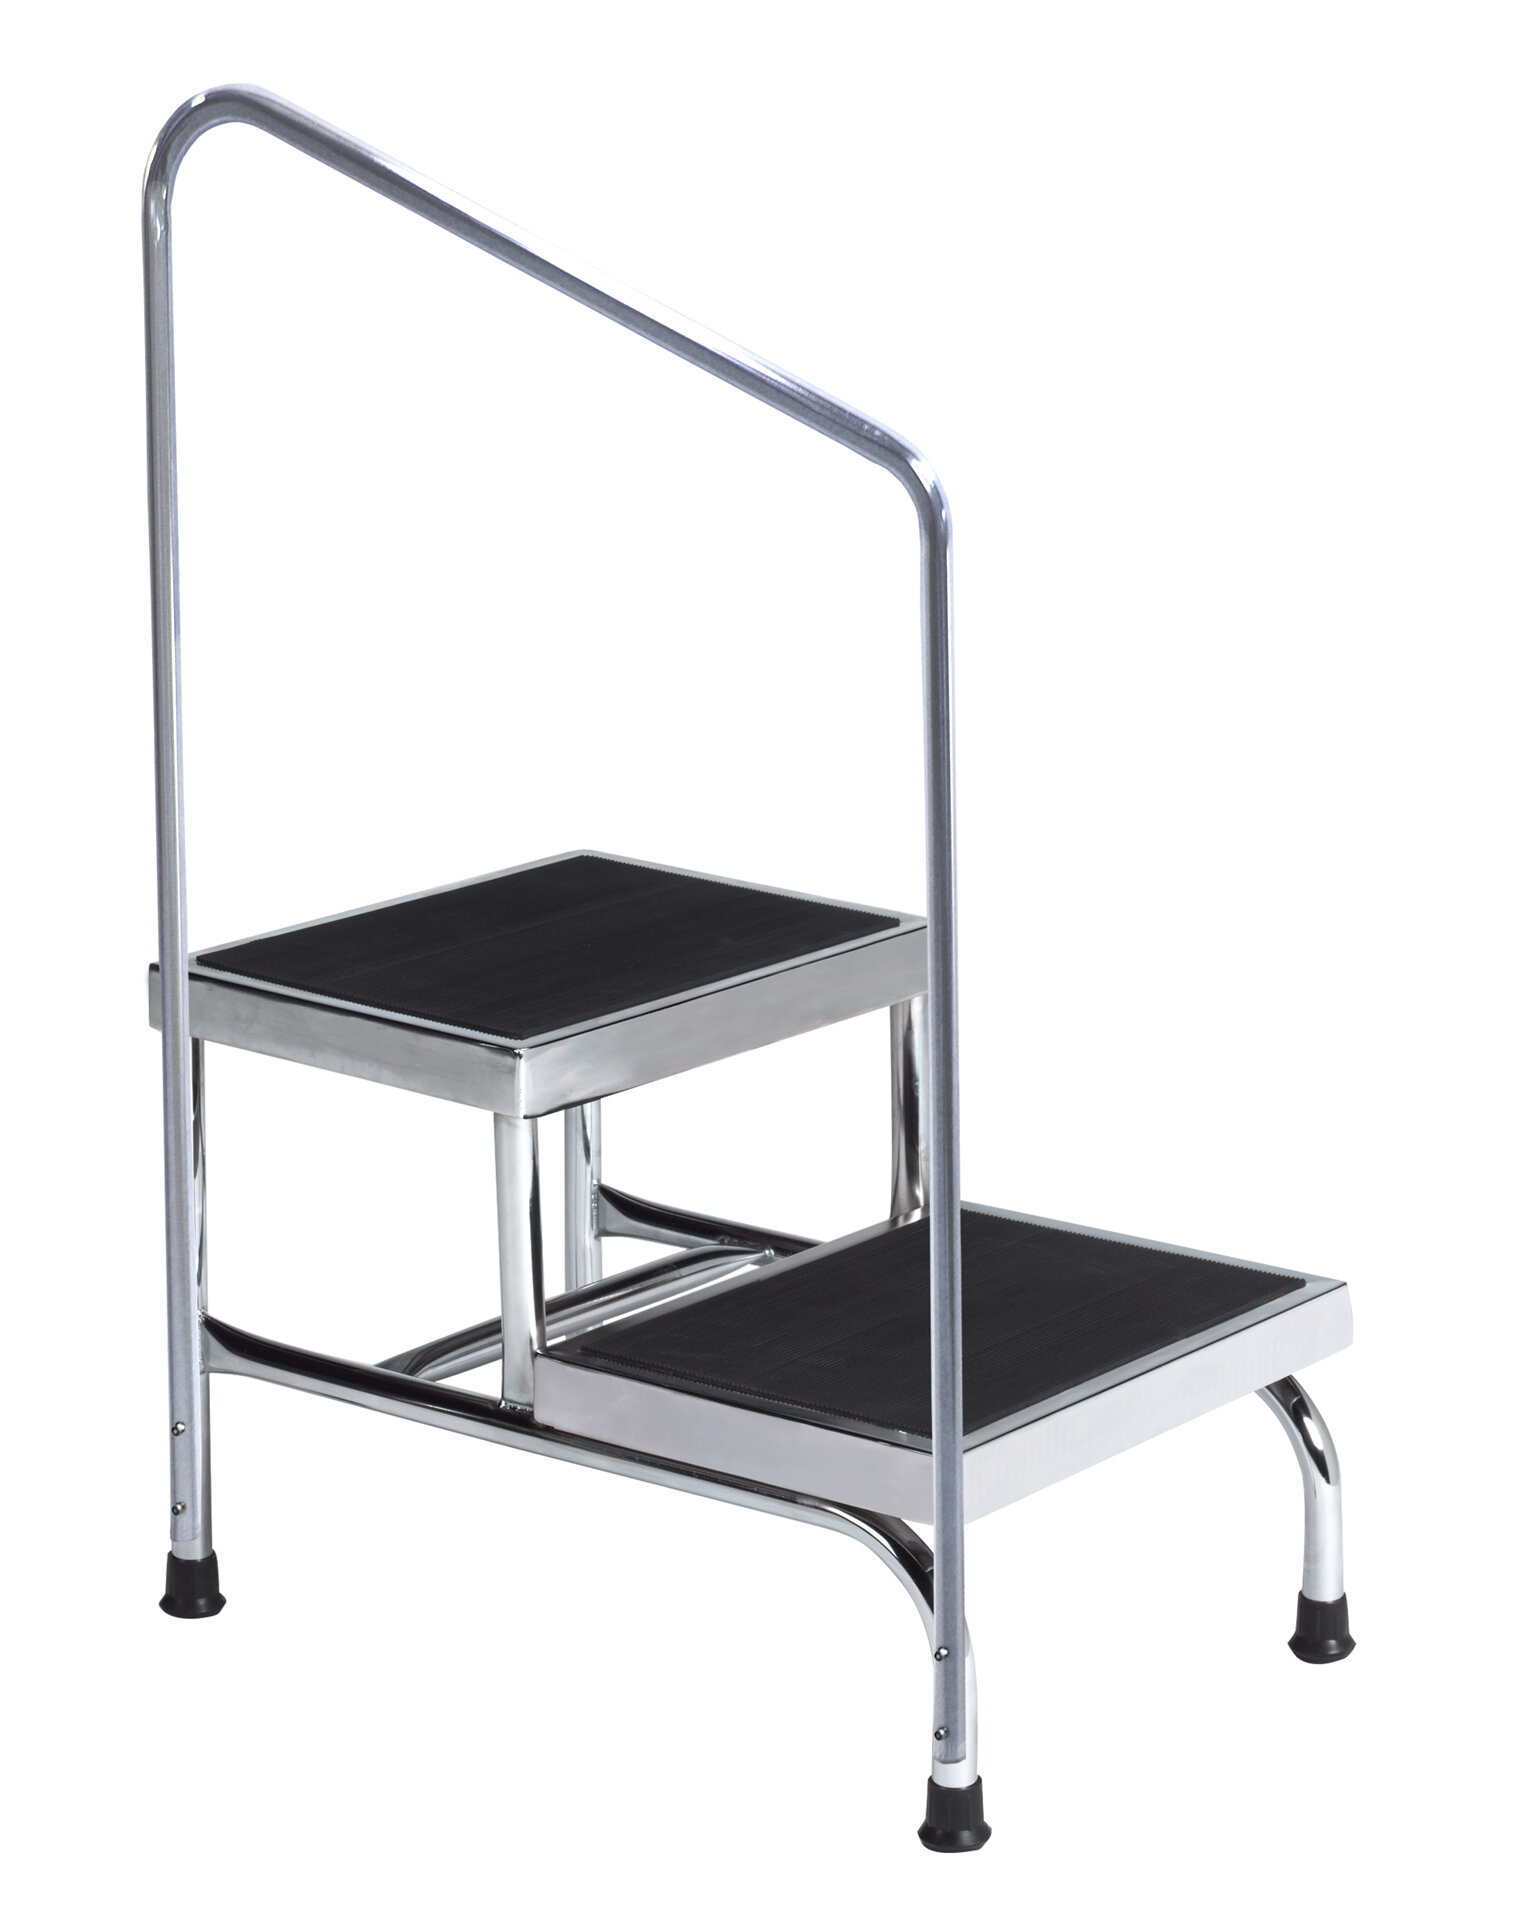 Astonishing Wfx Utility 2 Step Steel Step Stool With 600 Lb Load Ocoug Best Dining Table And Chair Ideas Images Ocougorg